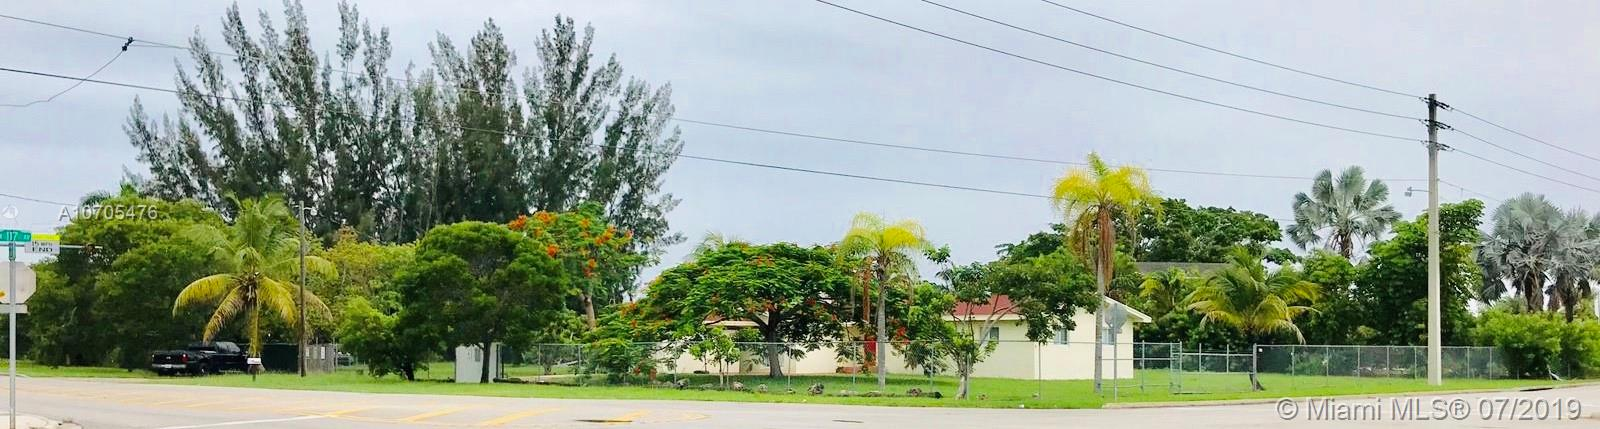 23140 SW 117th Ave  For Sale A10705476, FL